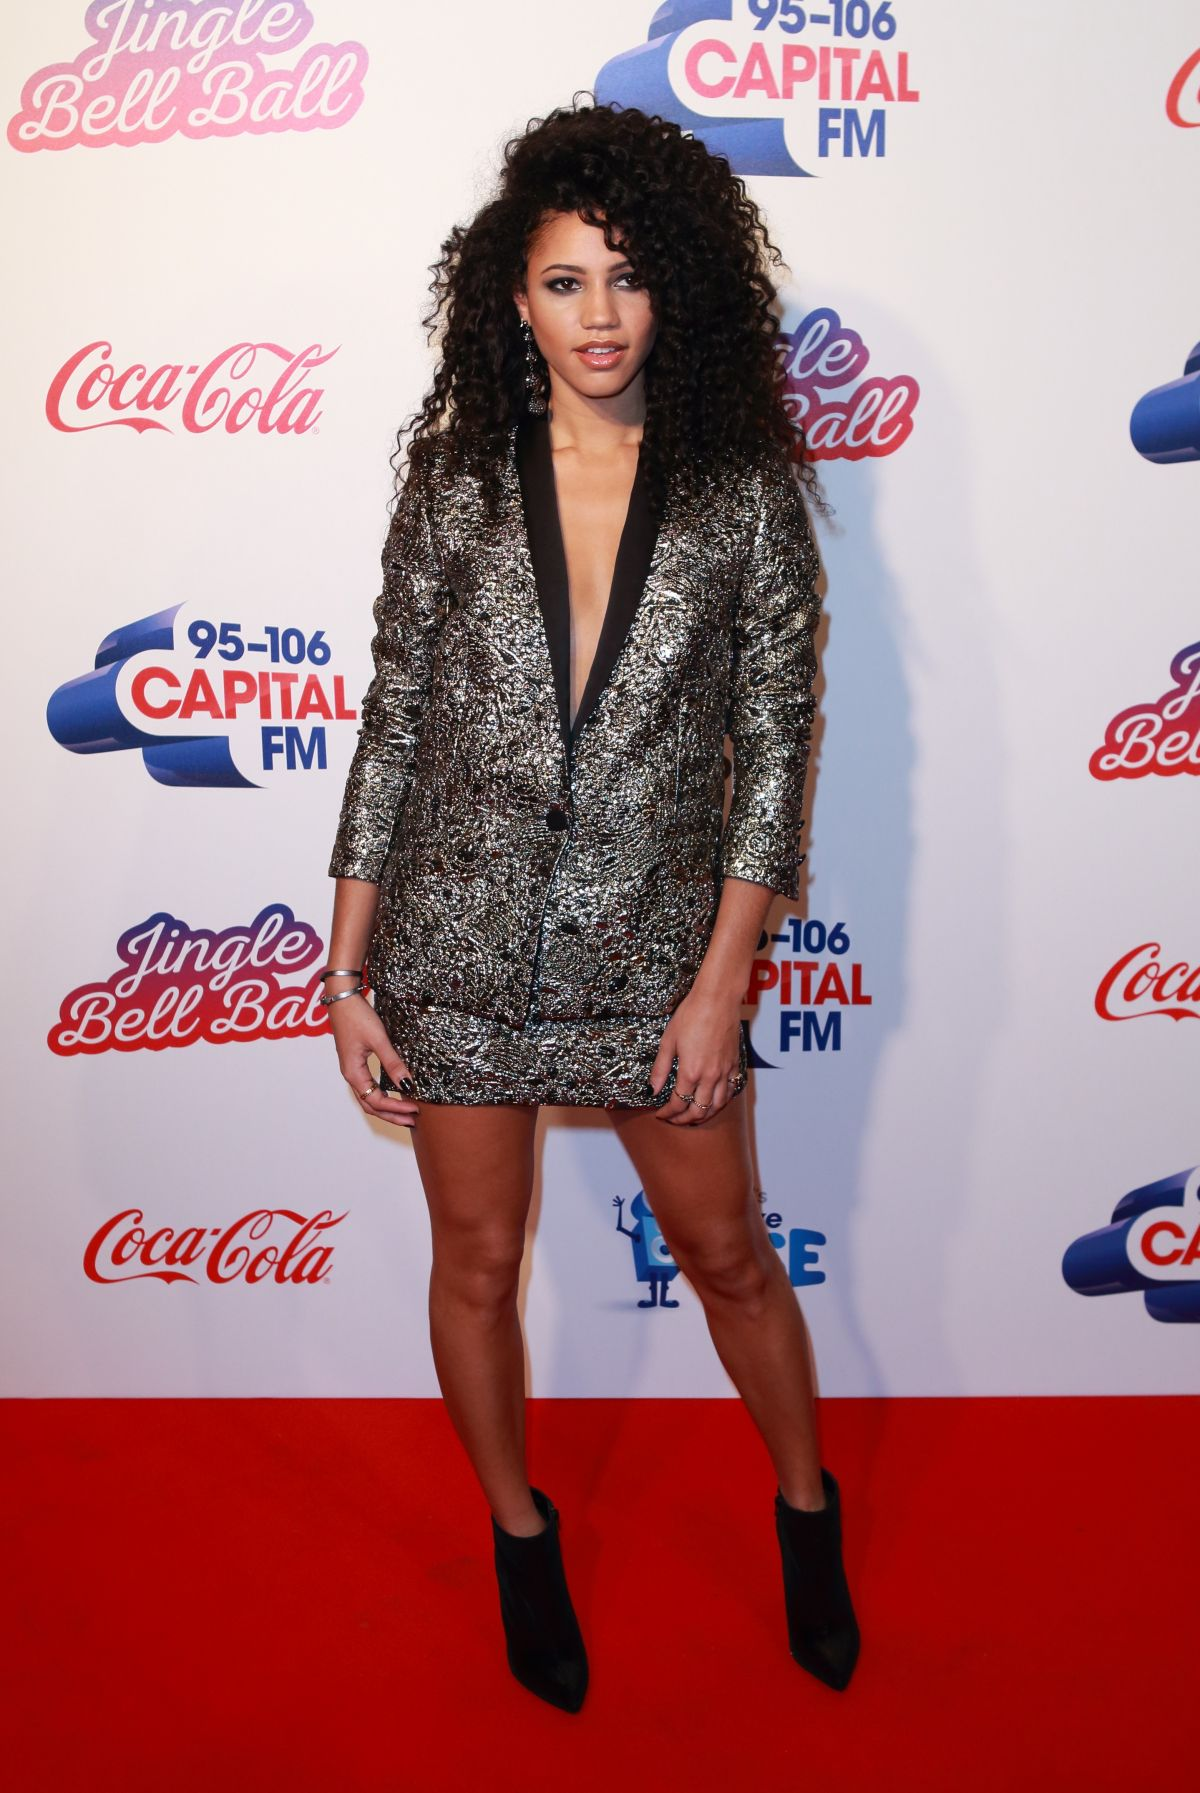 Vick Hope photos